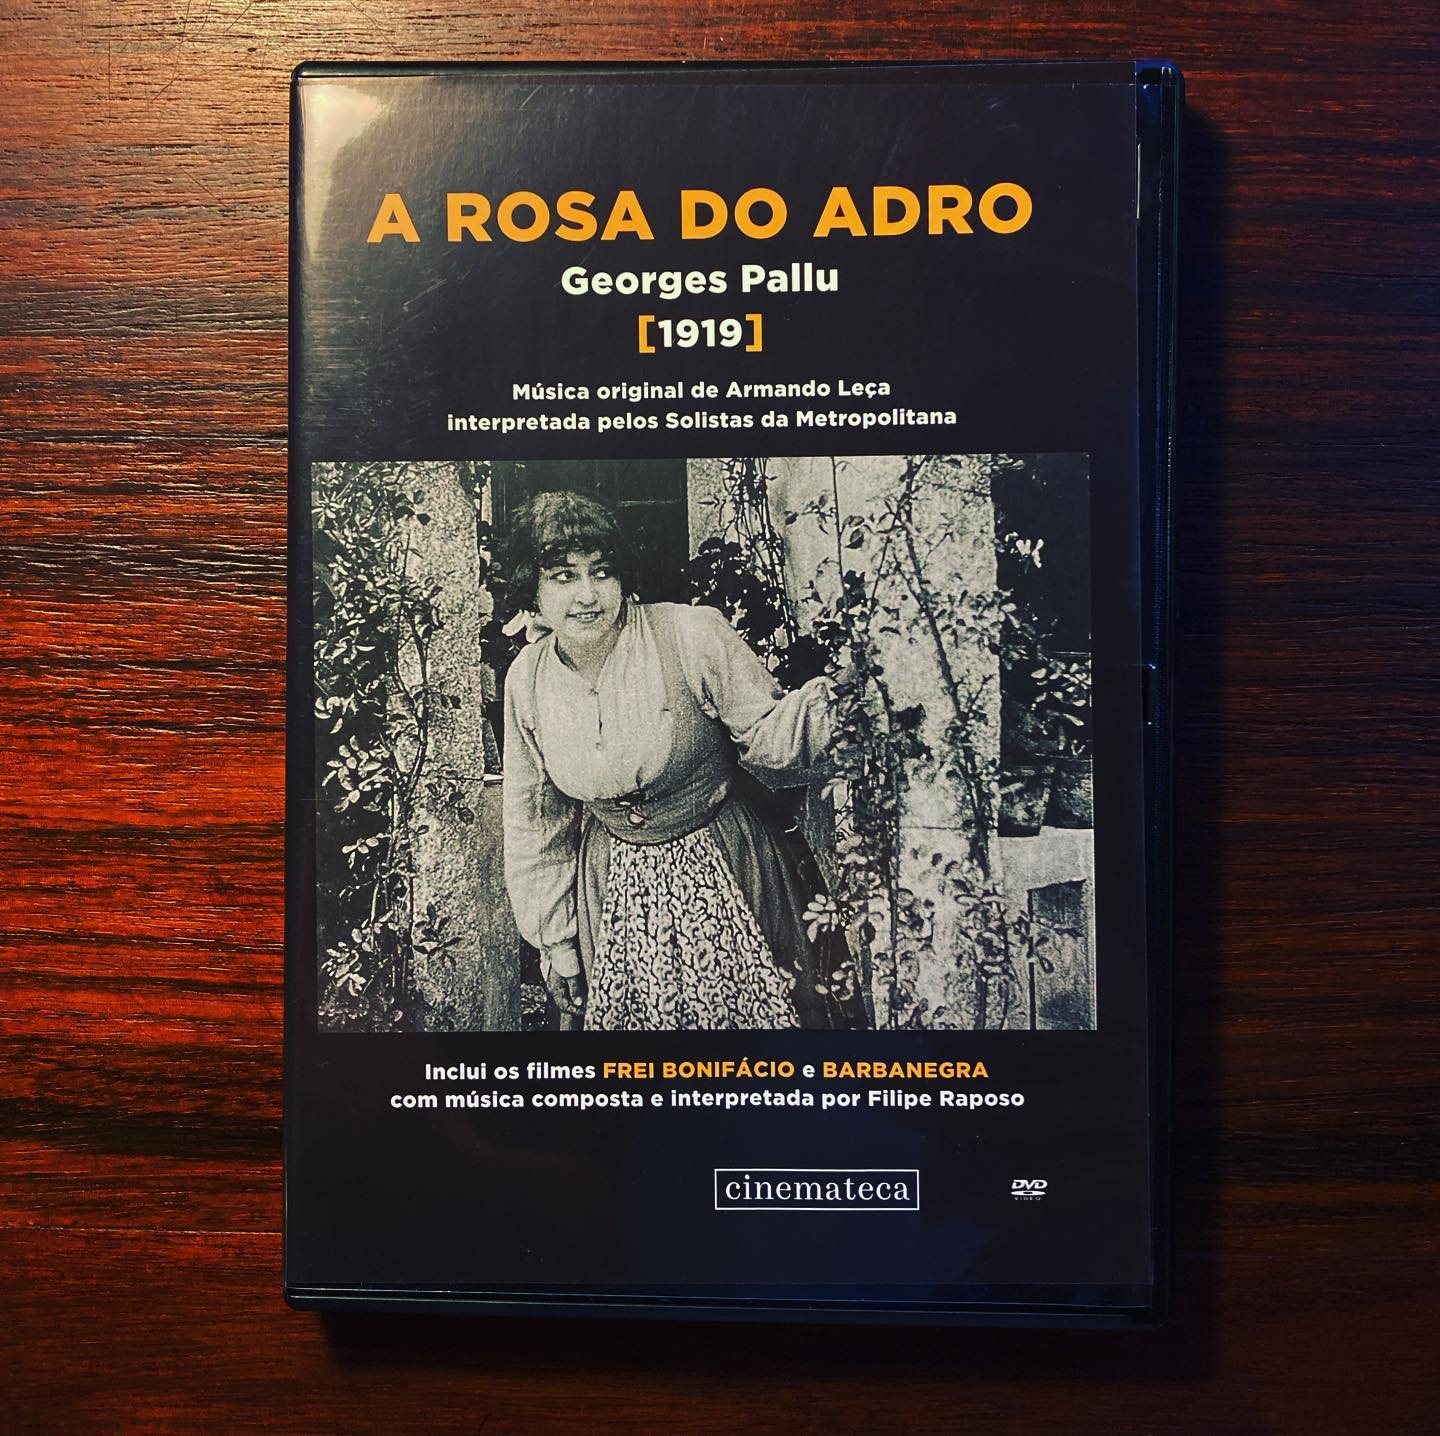 A ROSA DO ADRO 1919 • GEORGES PALLU